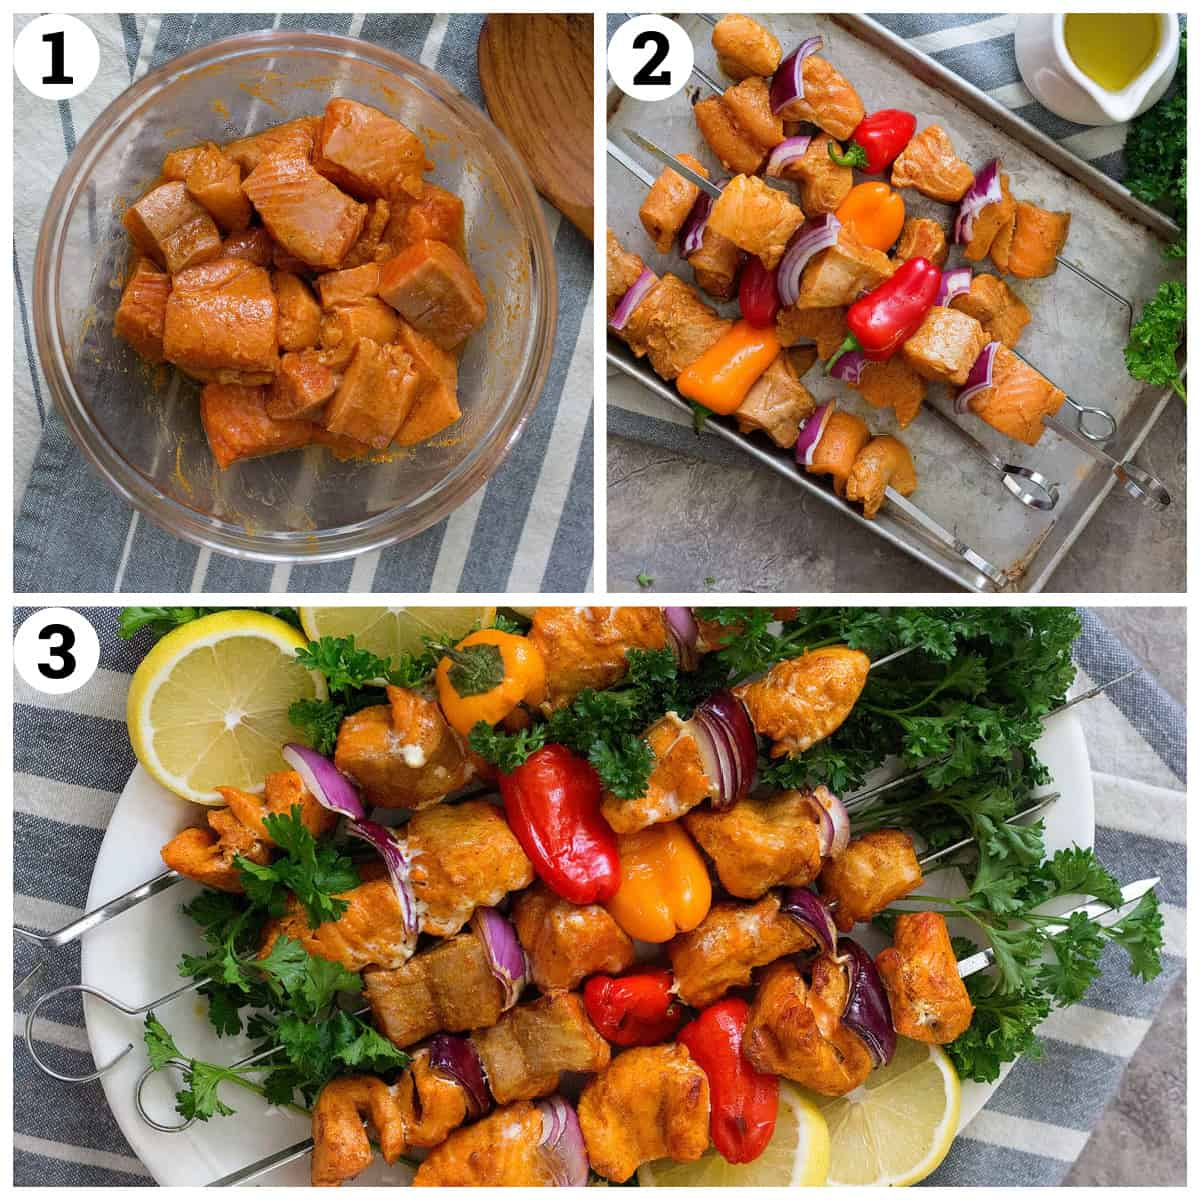 marinate the salmon in spices, thread on skewers and grill for 5 minutes on each side.